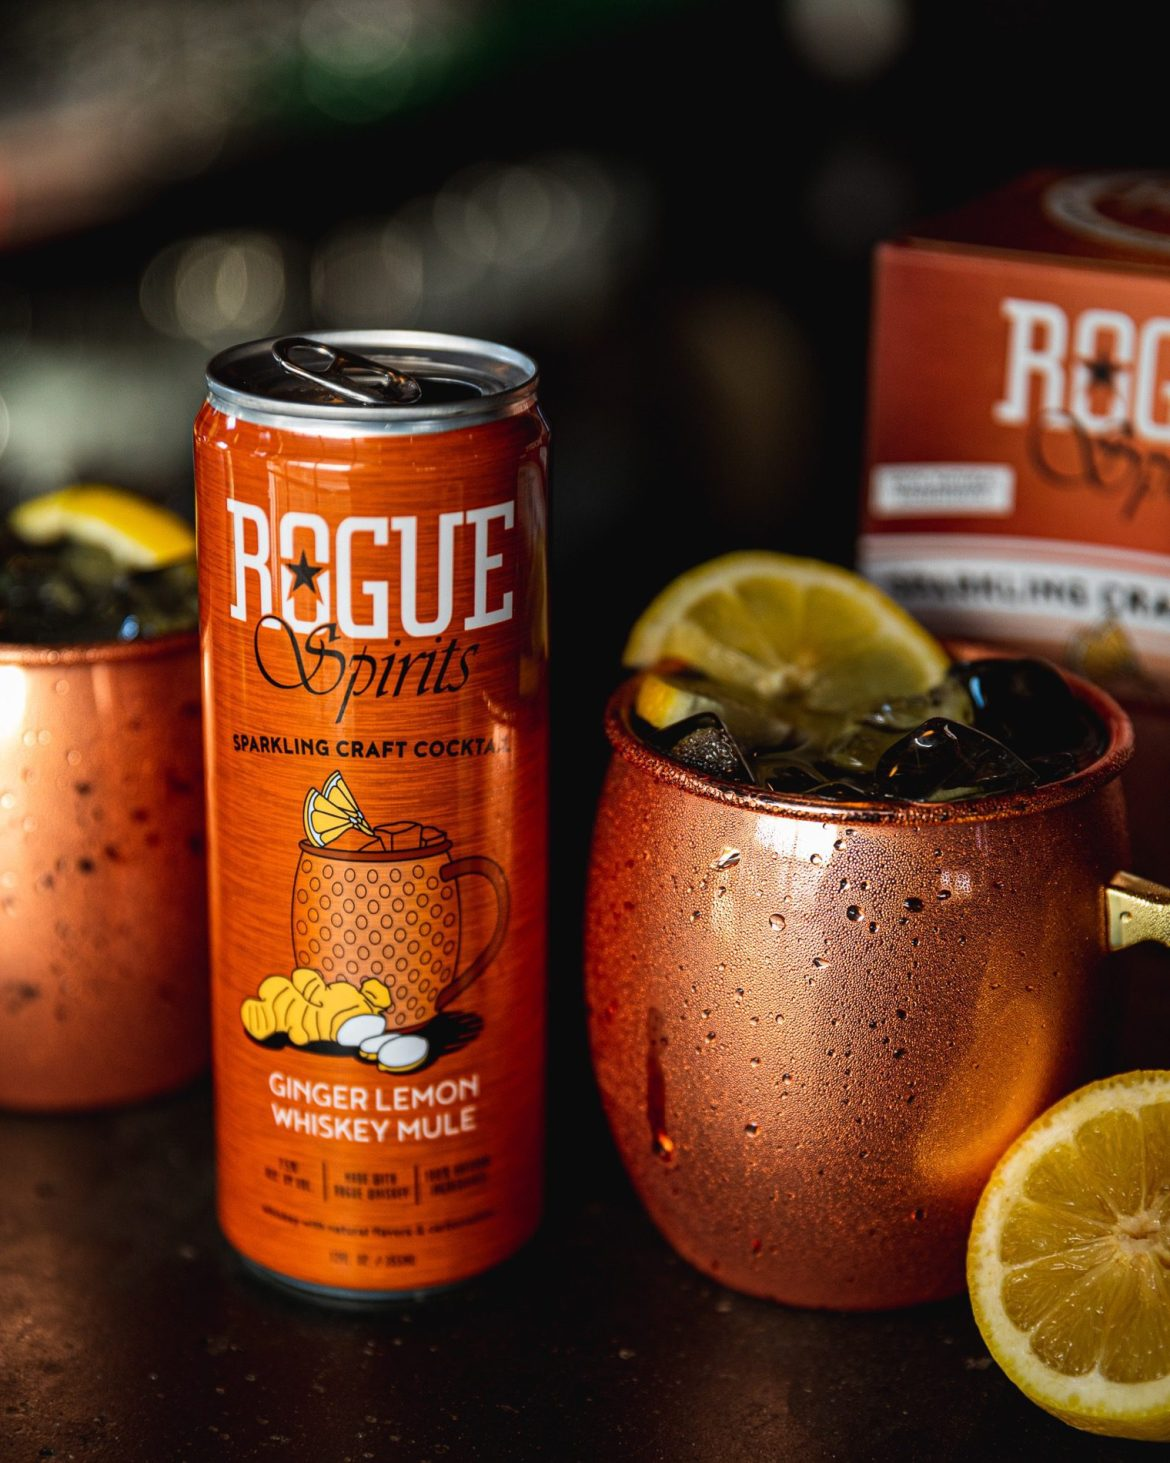 Instead of a beer, why not a Rogue canned cocktail?